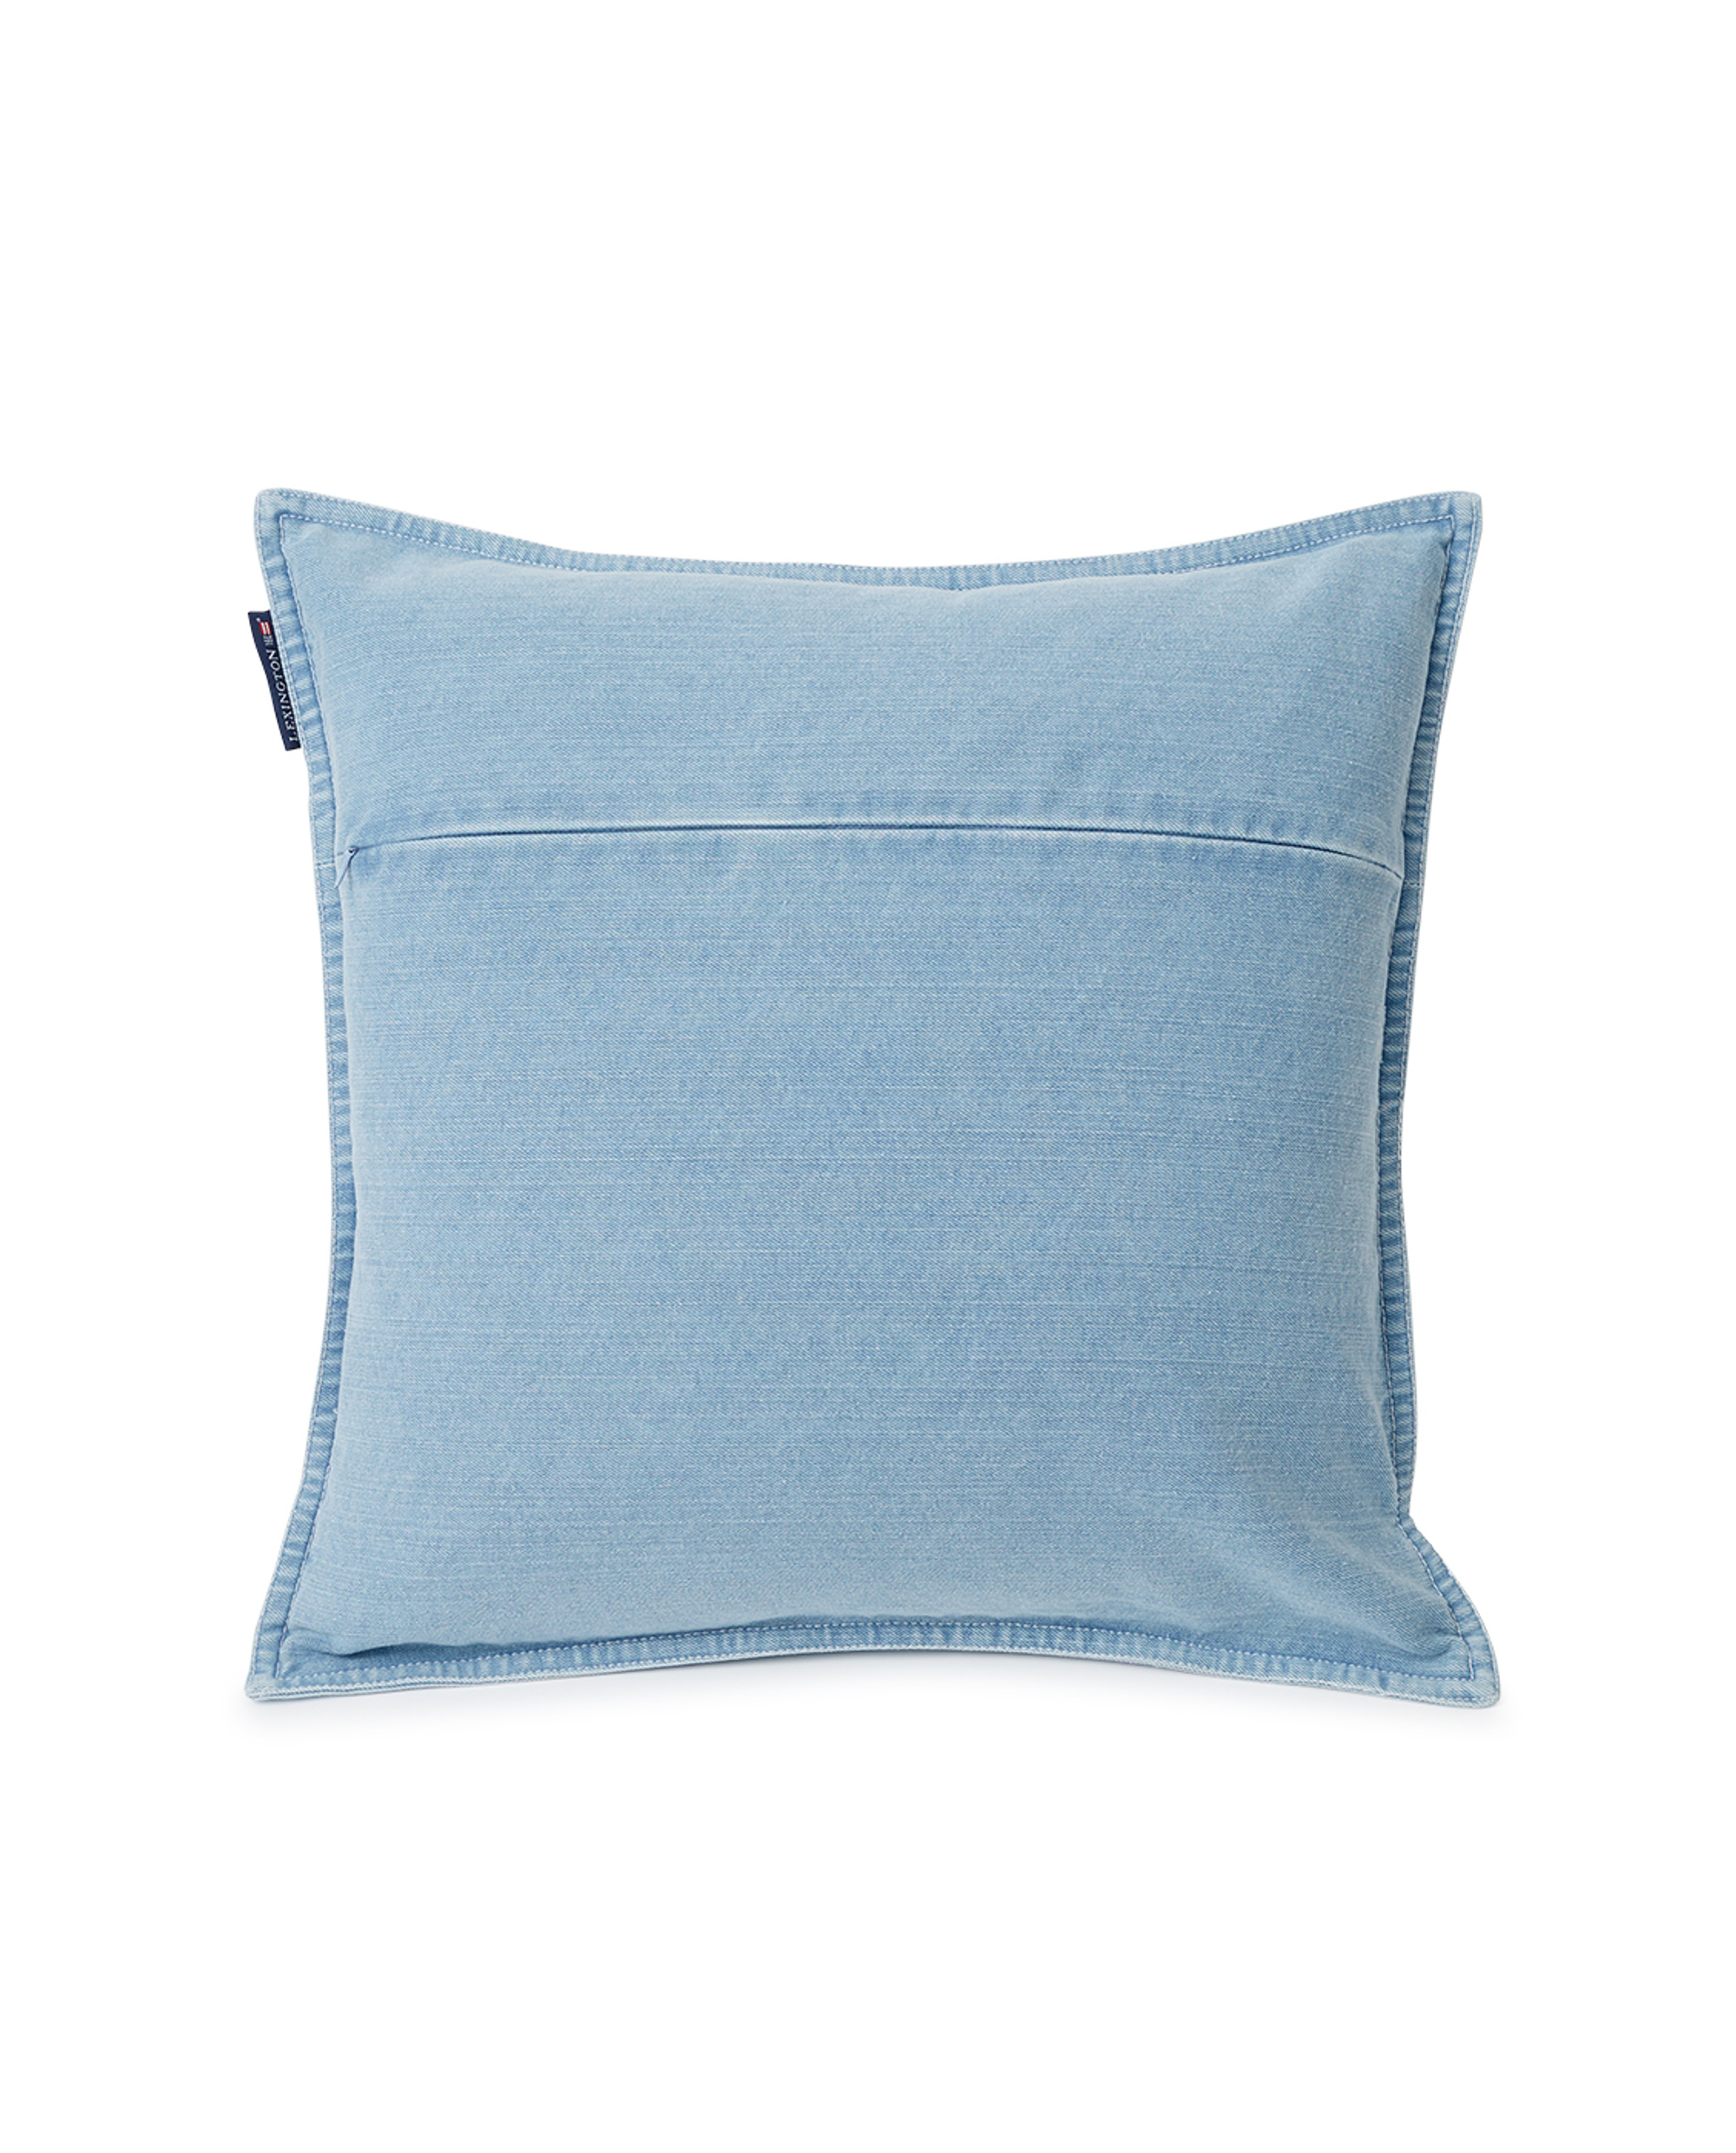 Denim Easy Living Cotton Pillow Cover